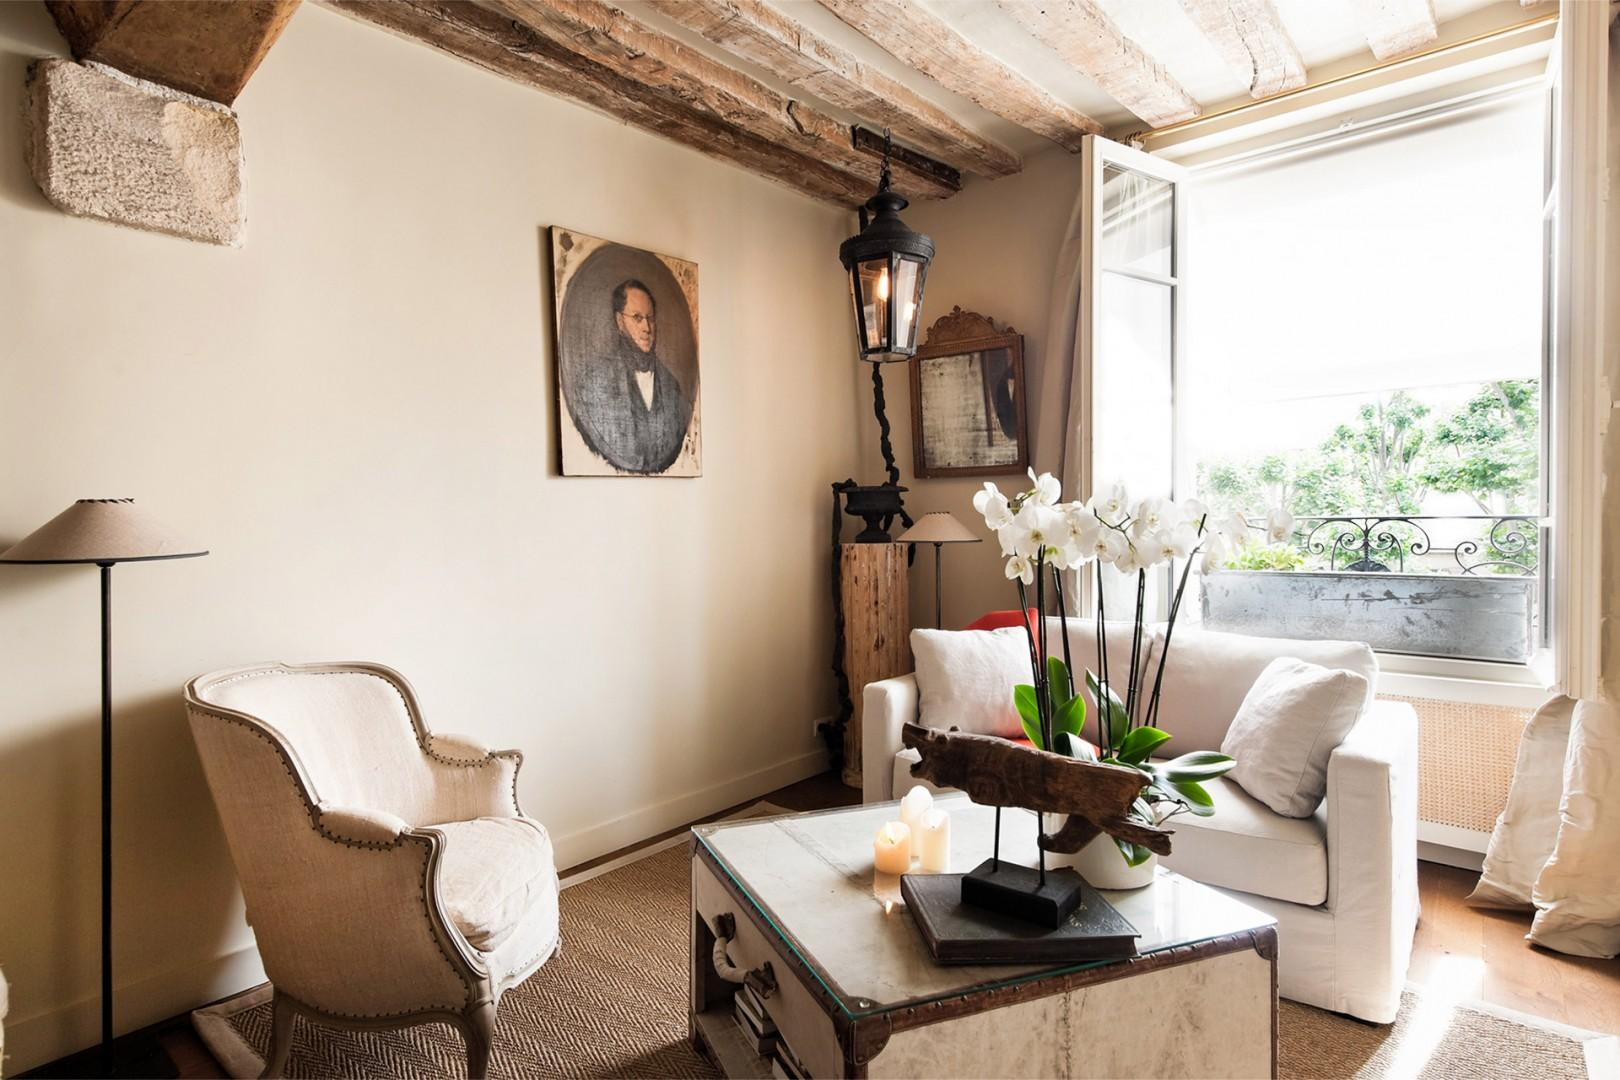 Welcome to our quaint Lussac apartment!